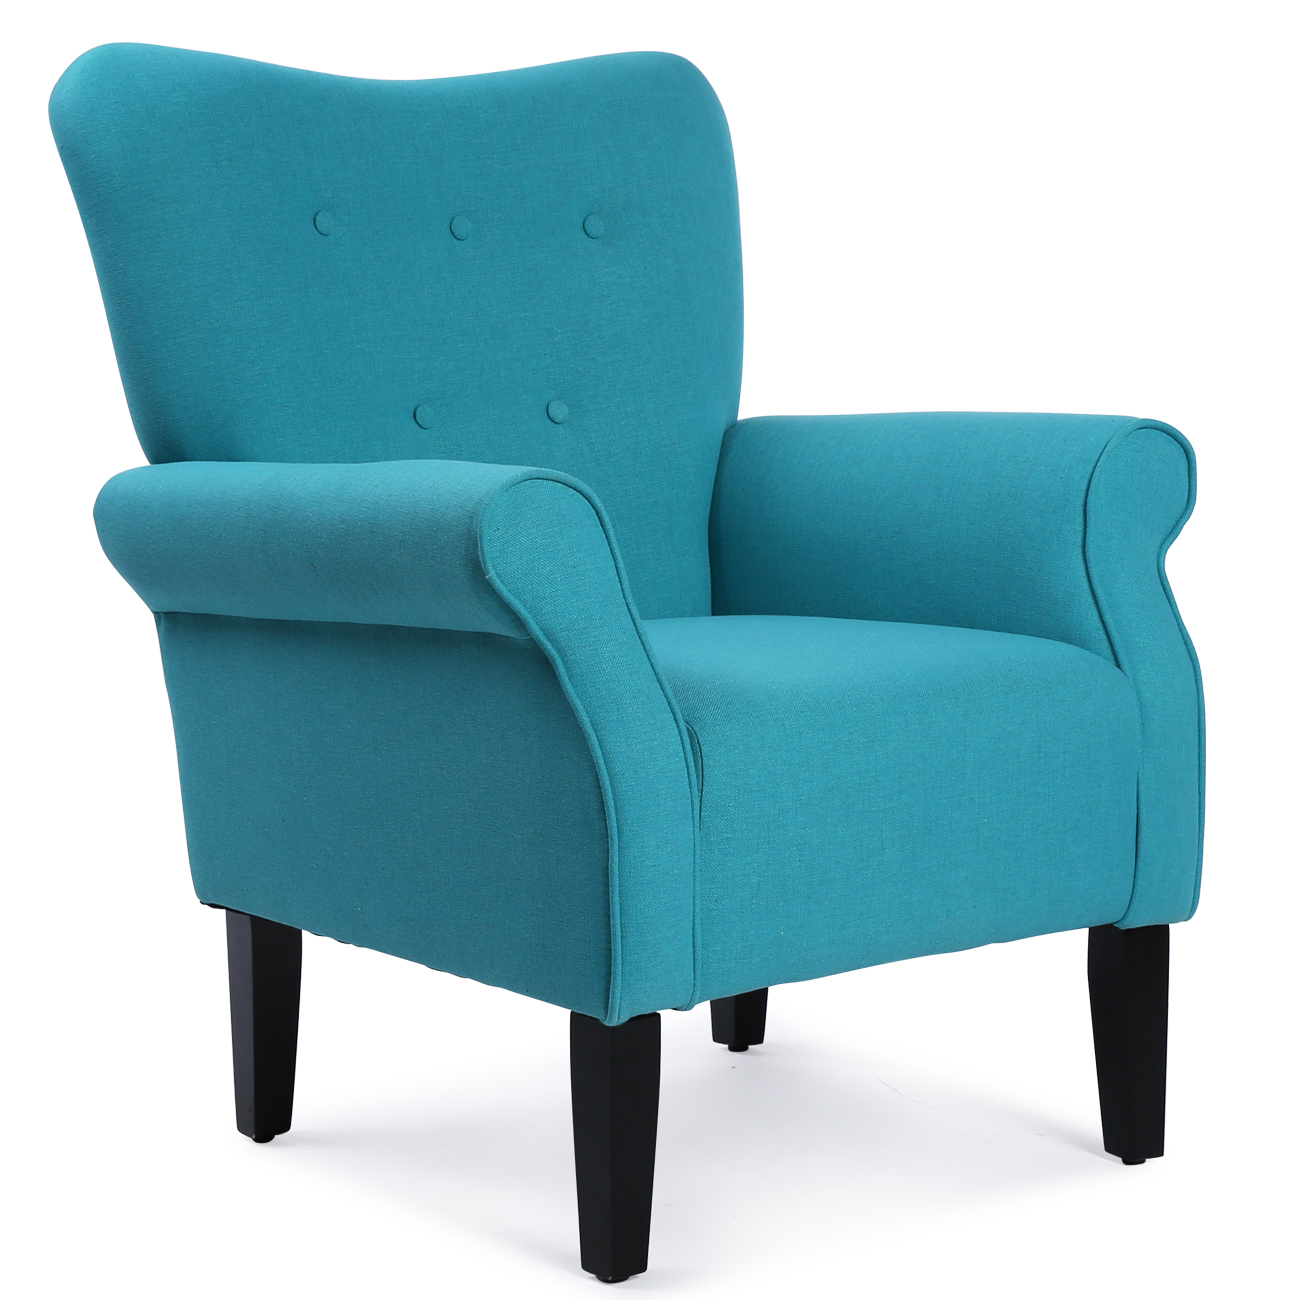 Designer Accent Chairs: NEW Modern Tufted Accent Chair Living Room Armrest High